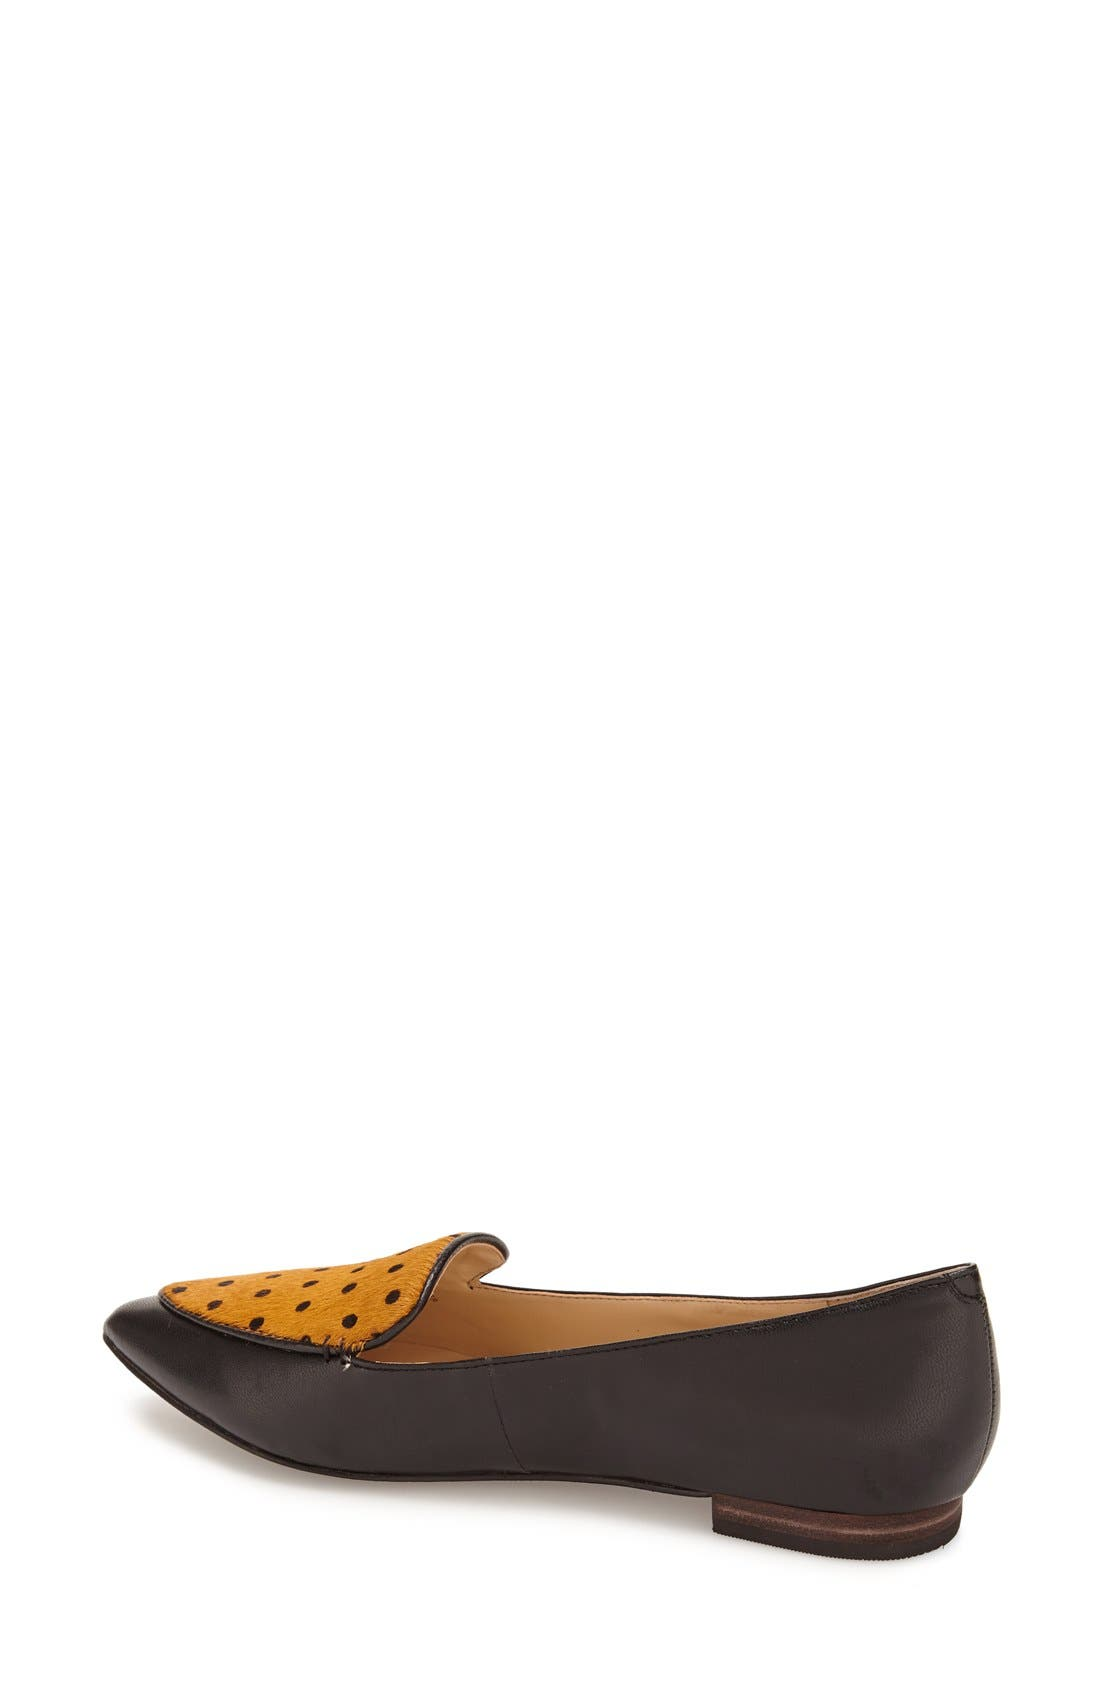 Alternate Image 2  - Sole Society 'Cammila' Pointy Toe Loafer (Women)